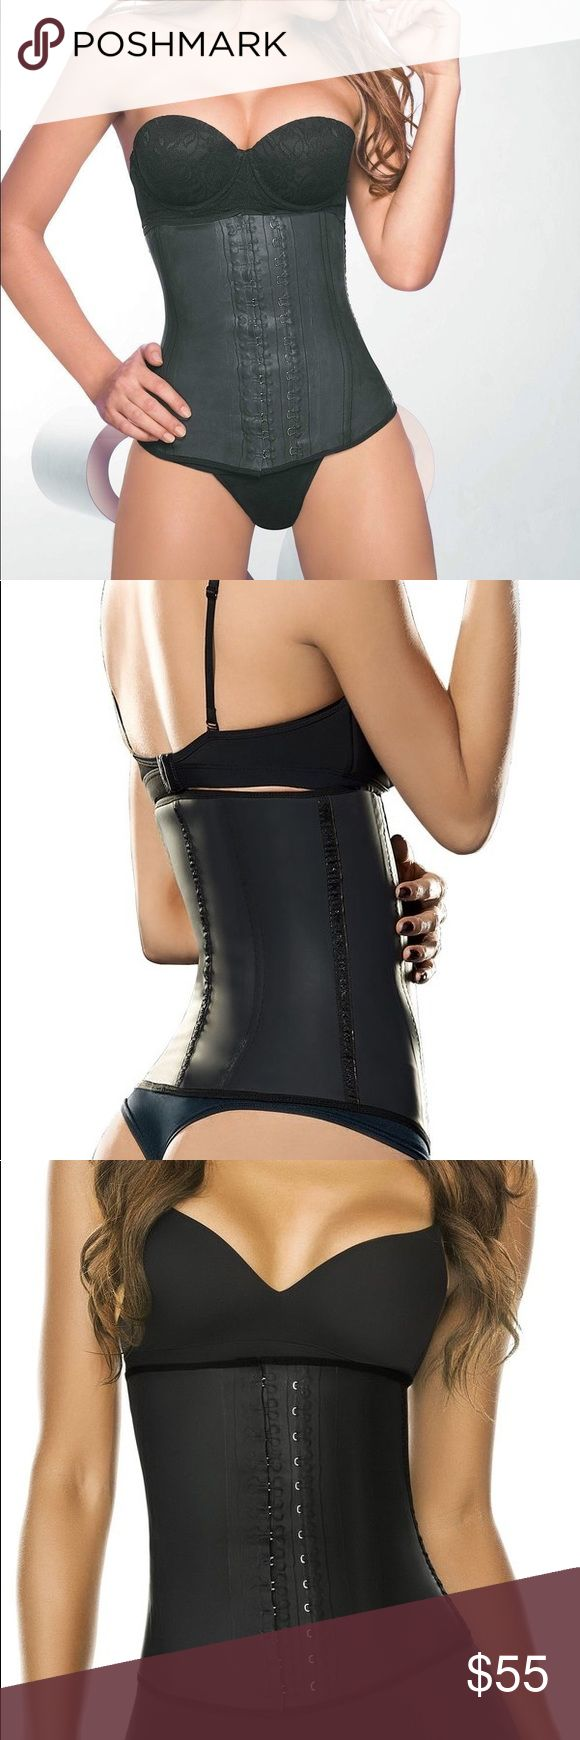 """Ann Cherry 2025 Latex Waist Trainer Faja ANN CHERY CLASICA 2025  Less inches, more curves! This Colombian Latex Girdle, Ann Chery 2025 """"Clasica"""", will help you reduce your size and control your figure. The Cotton lining in this waist shaper provides freshness and comfort and protects skin from latex. This size reducing shaper can be used everyday. Fajas Colombianas Ann Chery Shape wear for Women made in Colombia by Fajas Ann Chery, with the highest standard of quality and comfort. Ann Cherry…"""